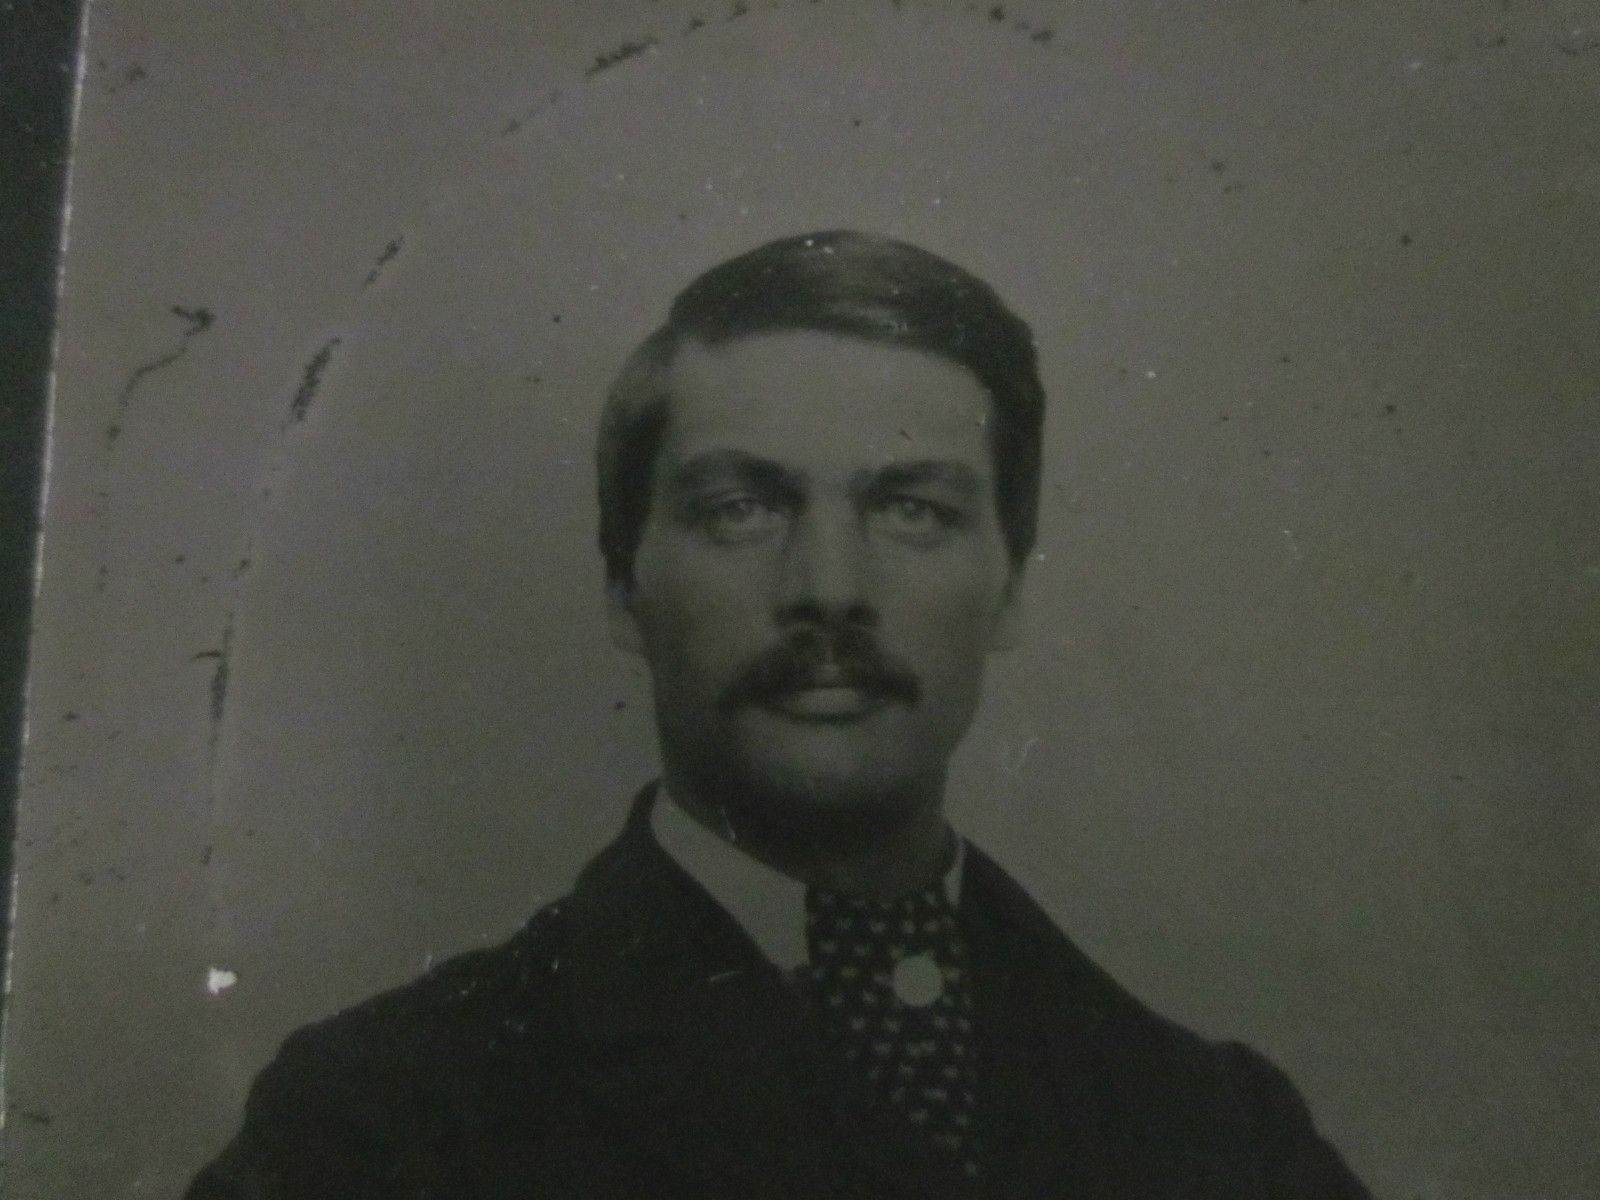 Unframed Daguerrotype or Tintype of A Handsome Gentleman with Cravat Mustache | eBay